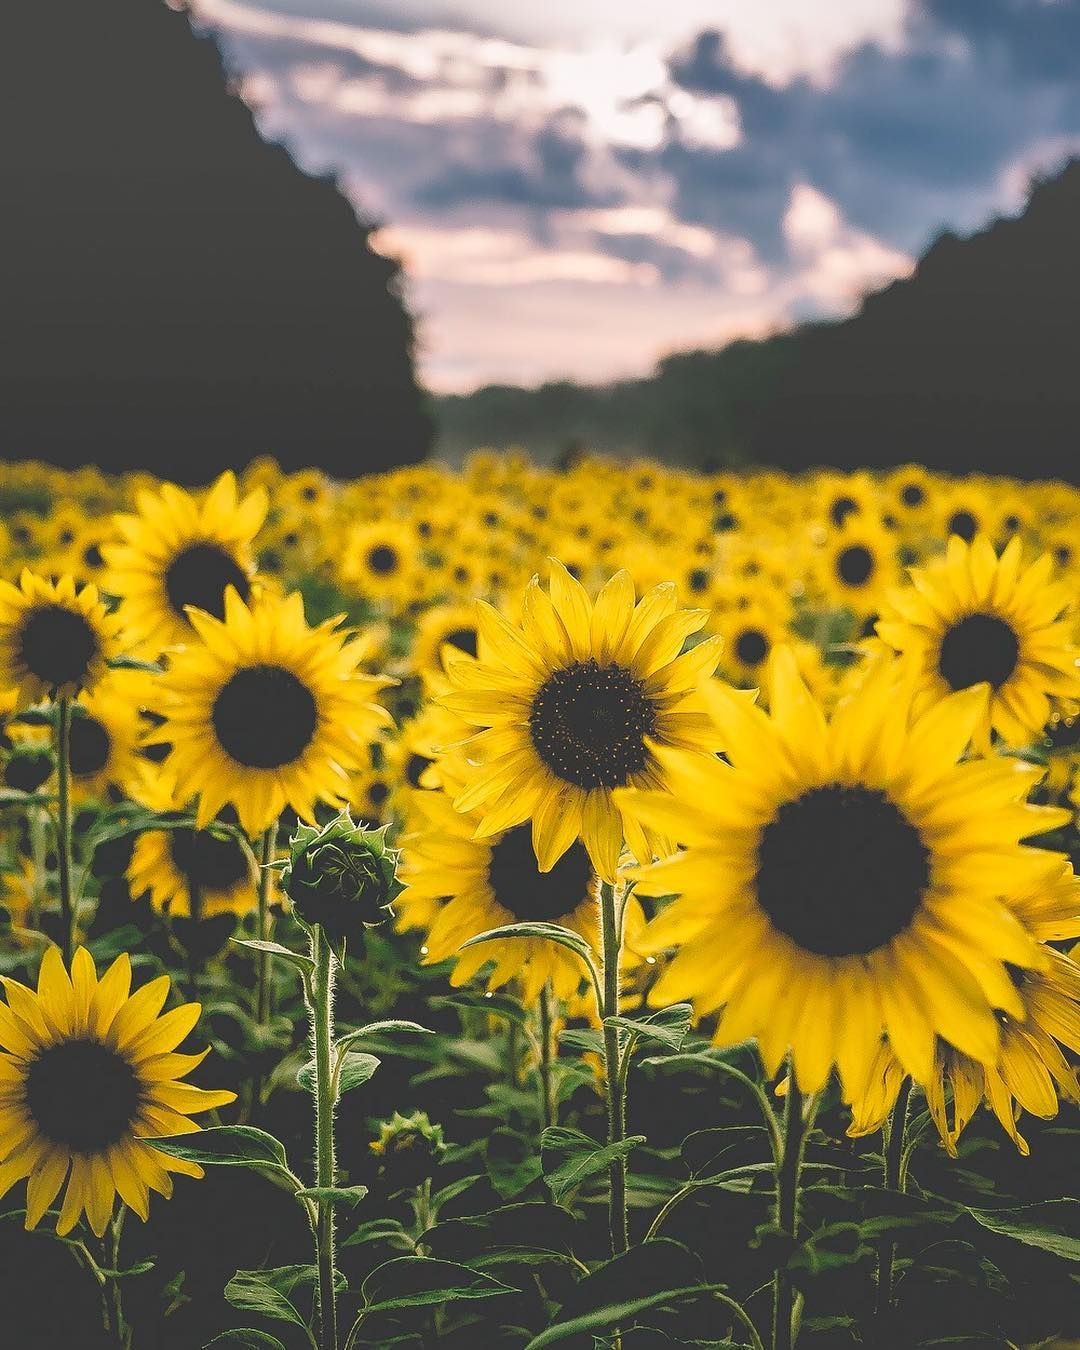 12 Photos That Prove Maryland S Massive Sunflower Field Is Instagram Gold Washingtonian Dc Sunflower Fields Blooming Sunflower Instagram Places